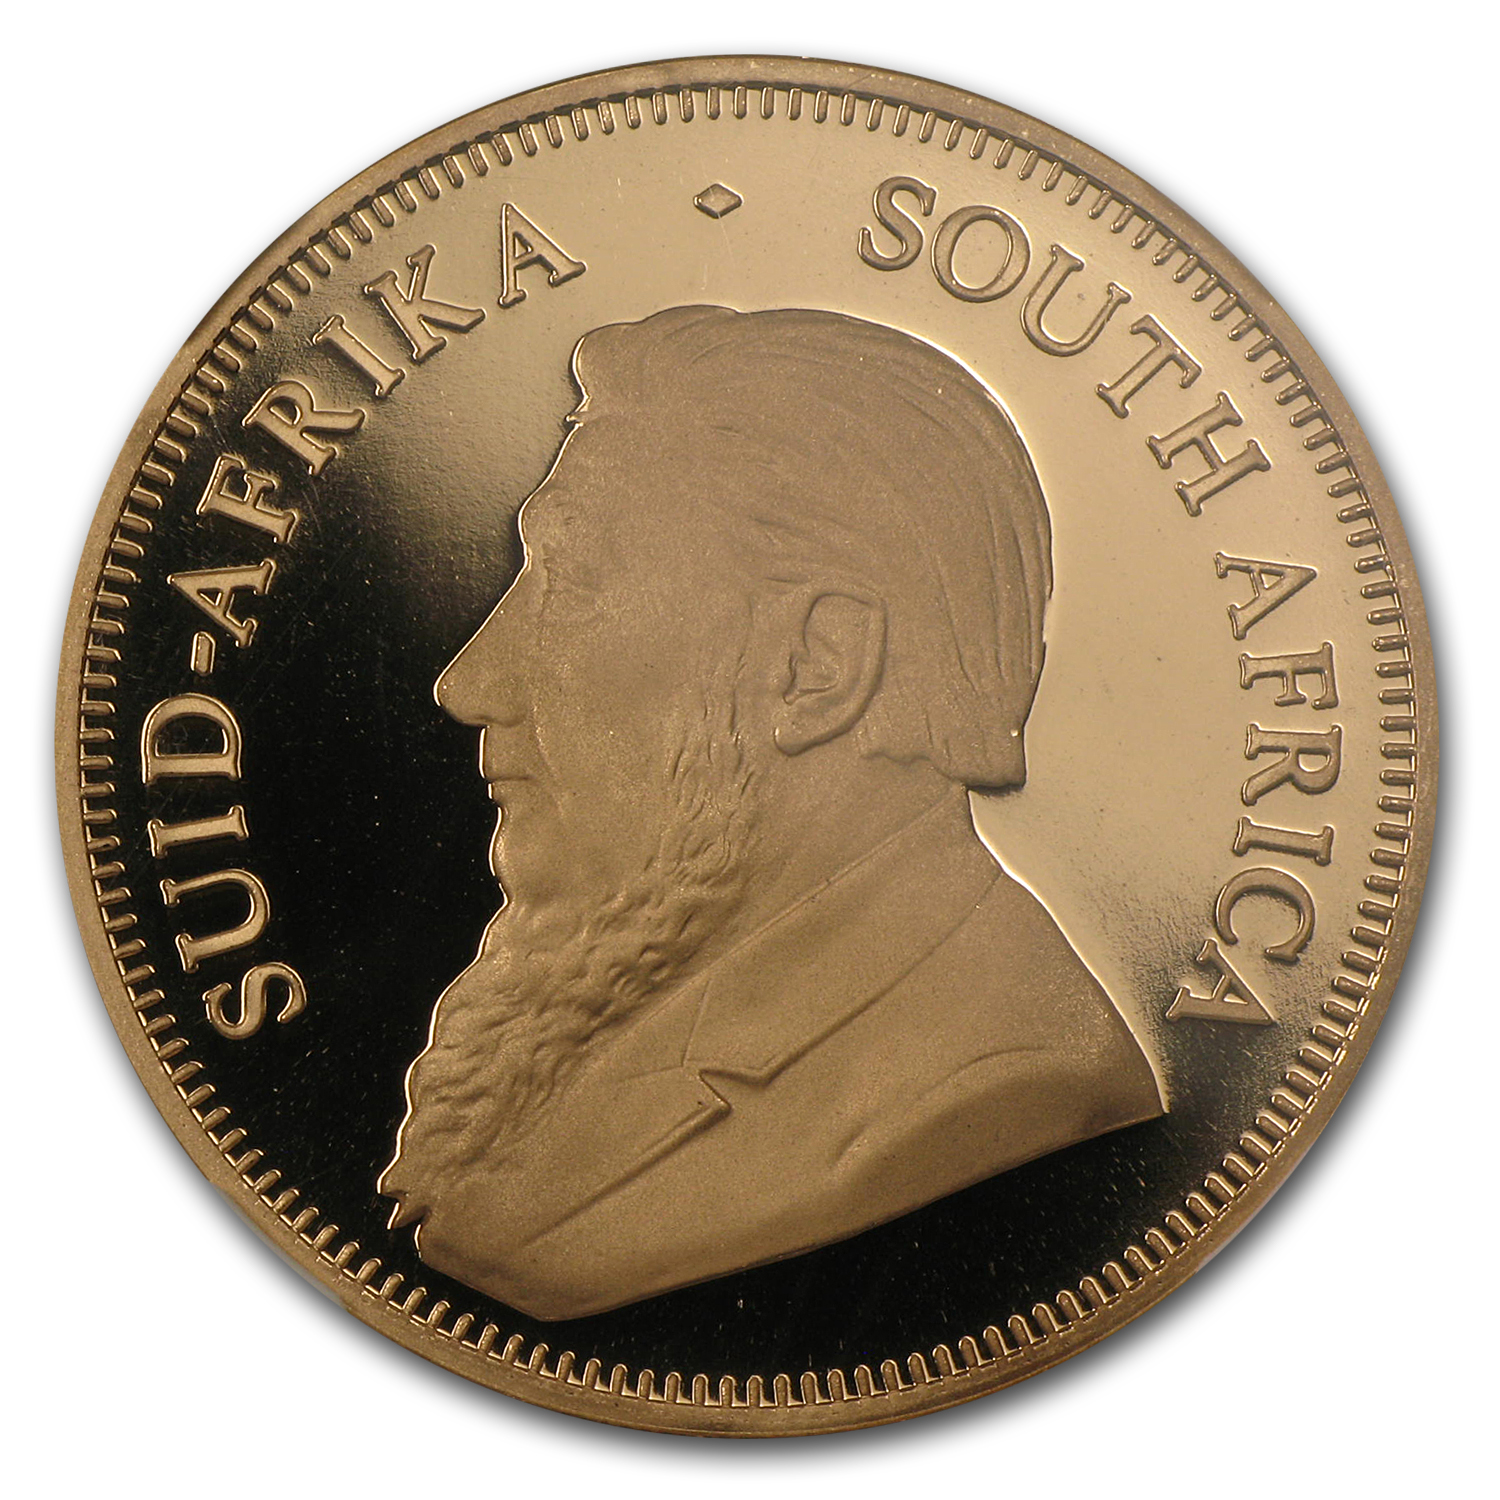 2009 1 oz Gold South African Krugerrand PF-70 NGC